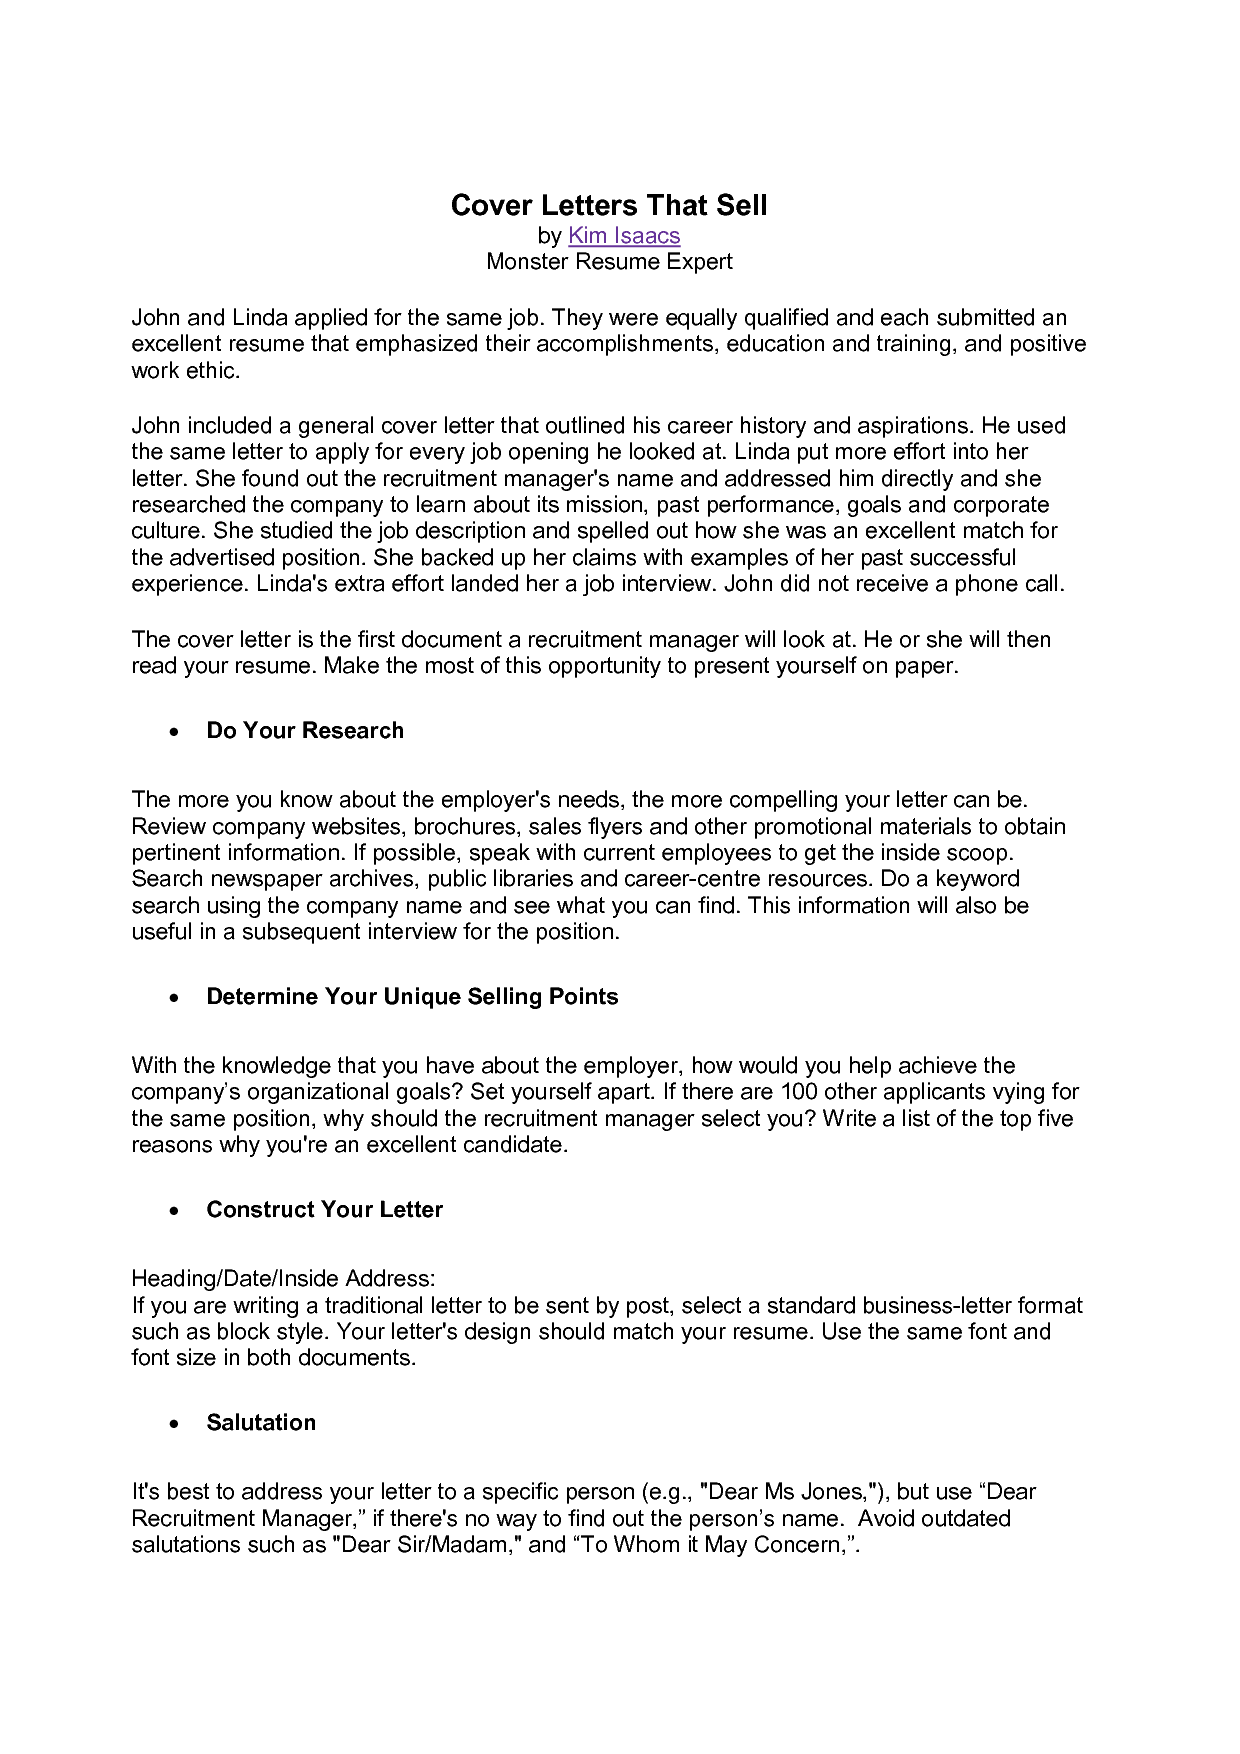 Monster Cover Letter Free Download Monster Cover Letter, Monster Cover  Letter Template, Monster Cover  Cover Letter Template Download